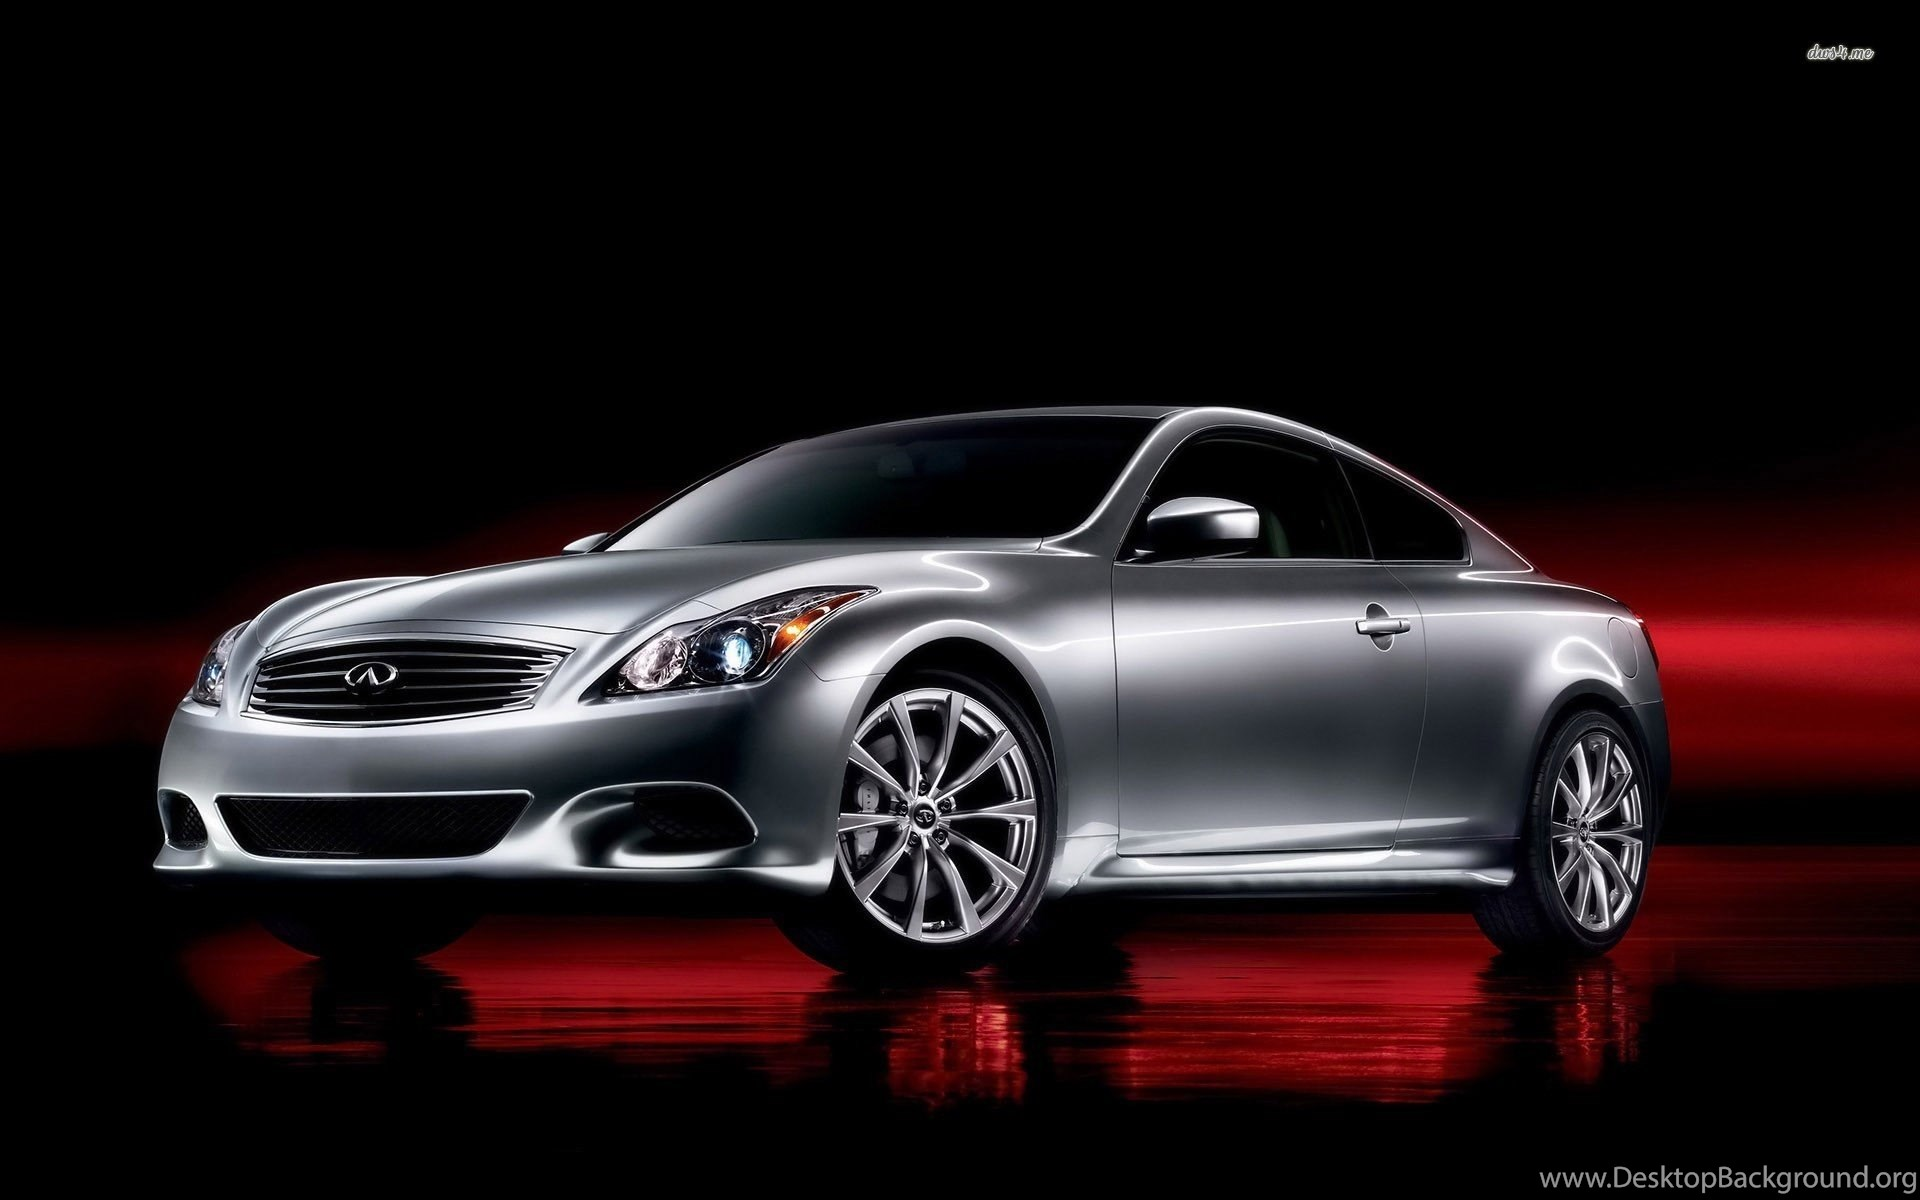 2016 Infiniti G37 Coupe Wallpapers Desktop Background